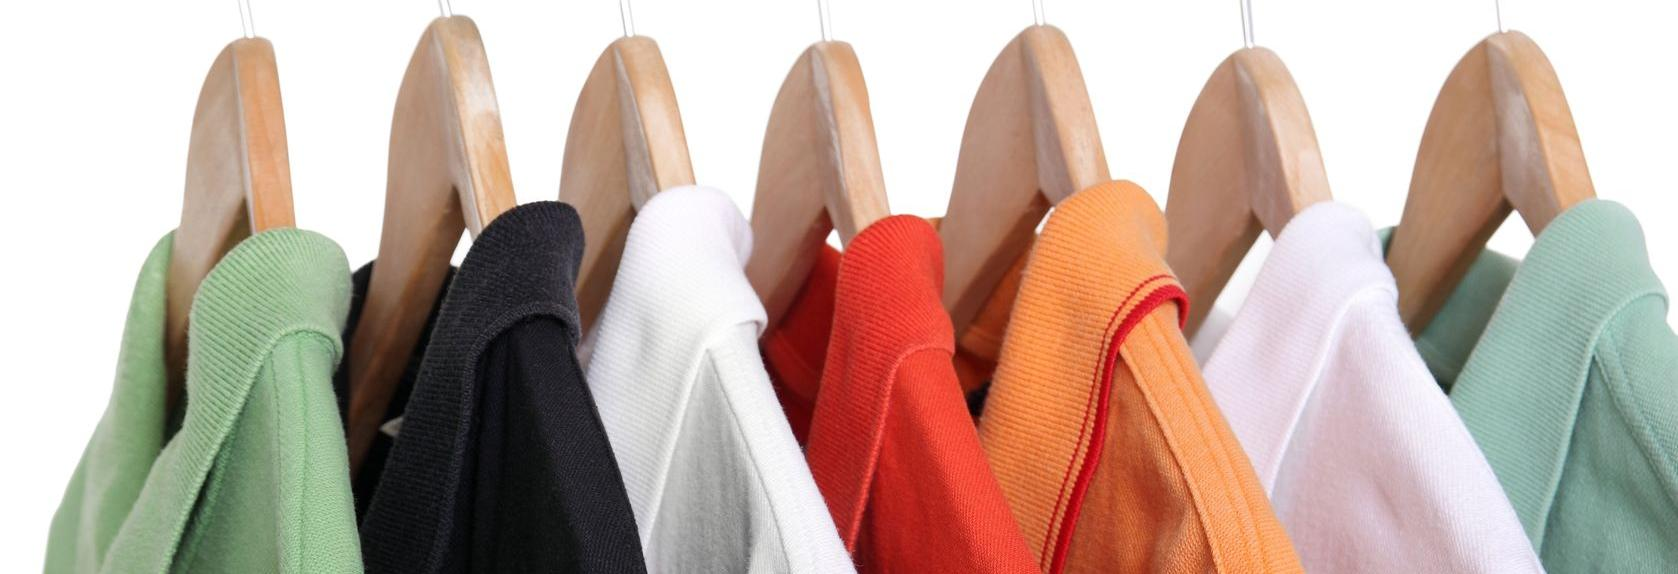 prestige dry cleaner aliso Viejo ca dry cleaning coupons near me